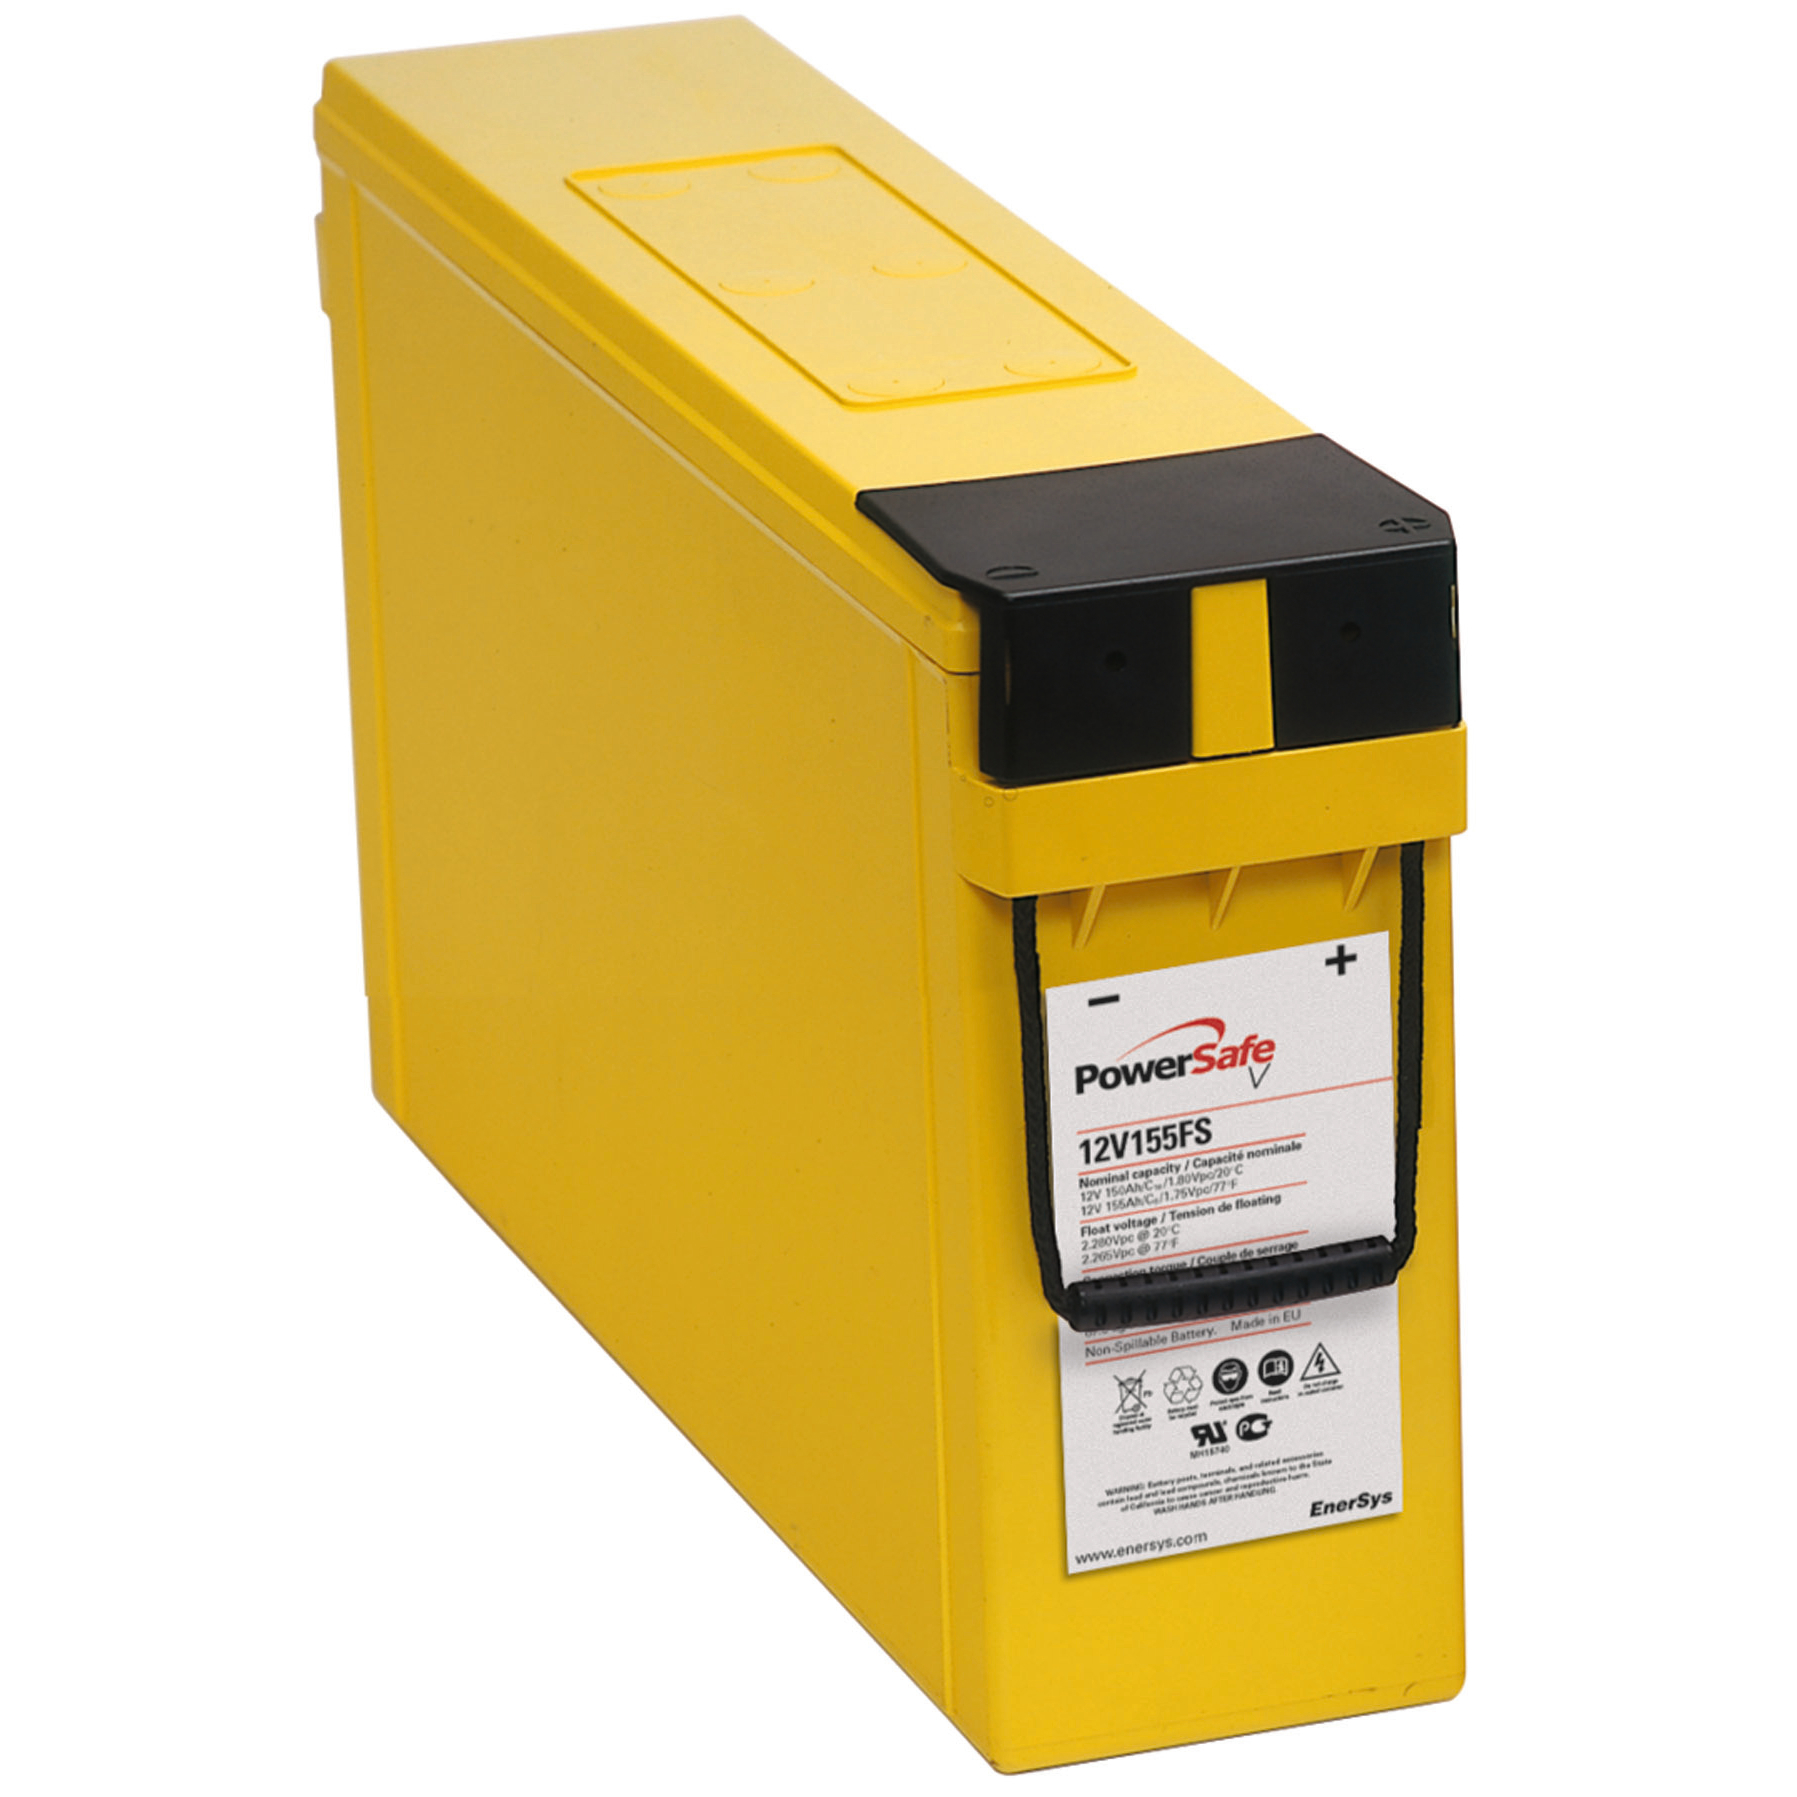 EnerSys PowerSafe V-FT 12V155FS, 12V 155Ah